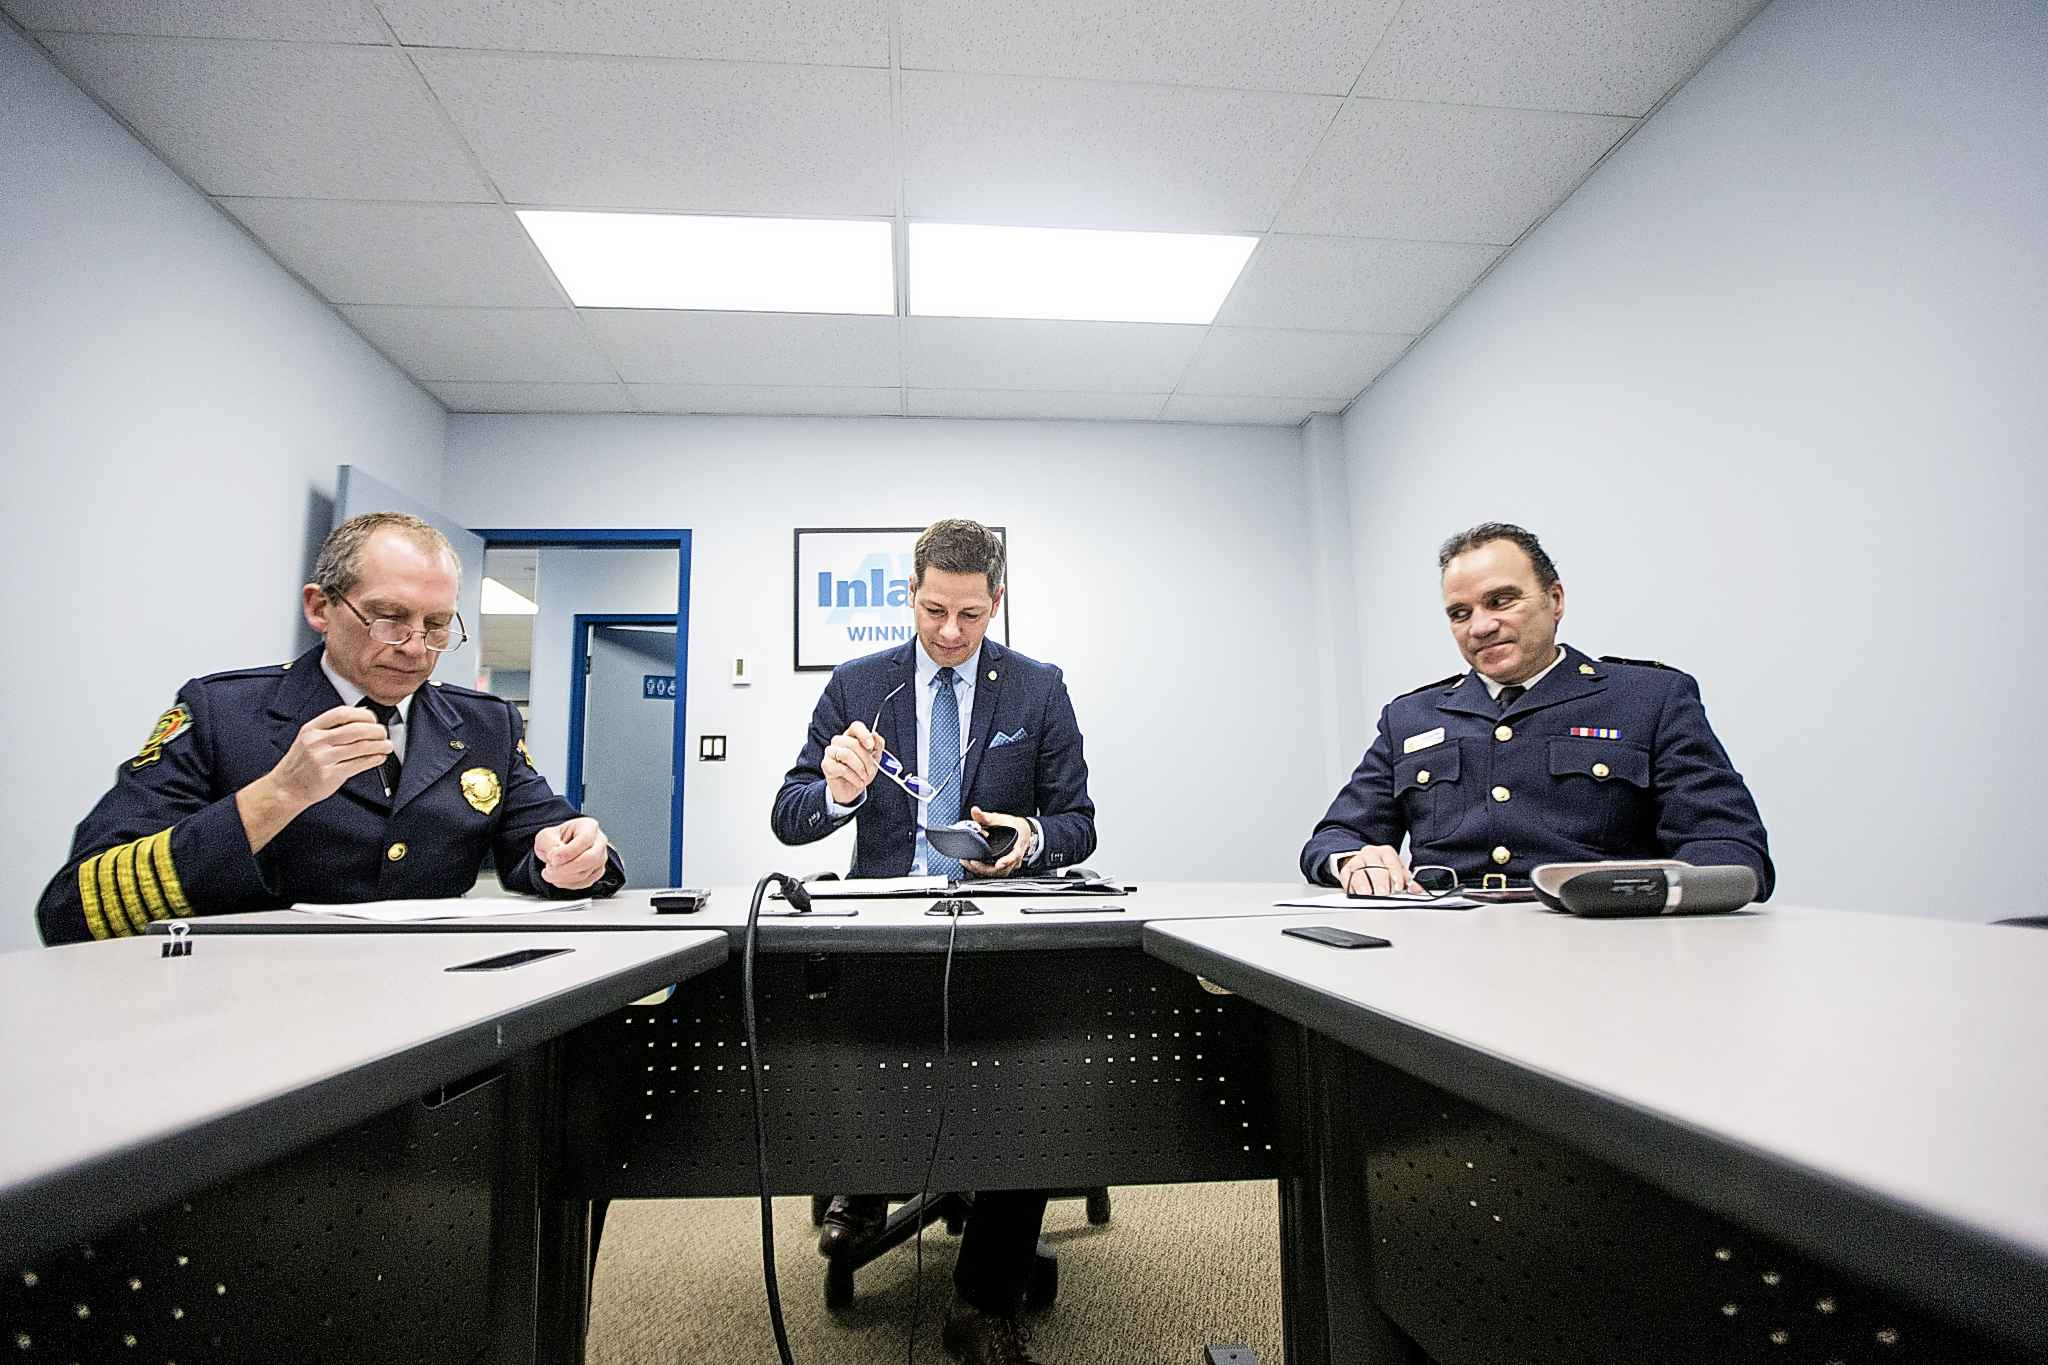 Winnipeg Fire Paramedic Service Chief John Lane (left), Mayor Brian Bowman, and Winnipeg Police Chief Danny Smyth appeared before the parliamentary standing committee on health on Tuesday via video conference.